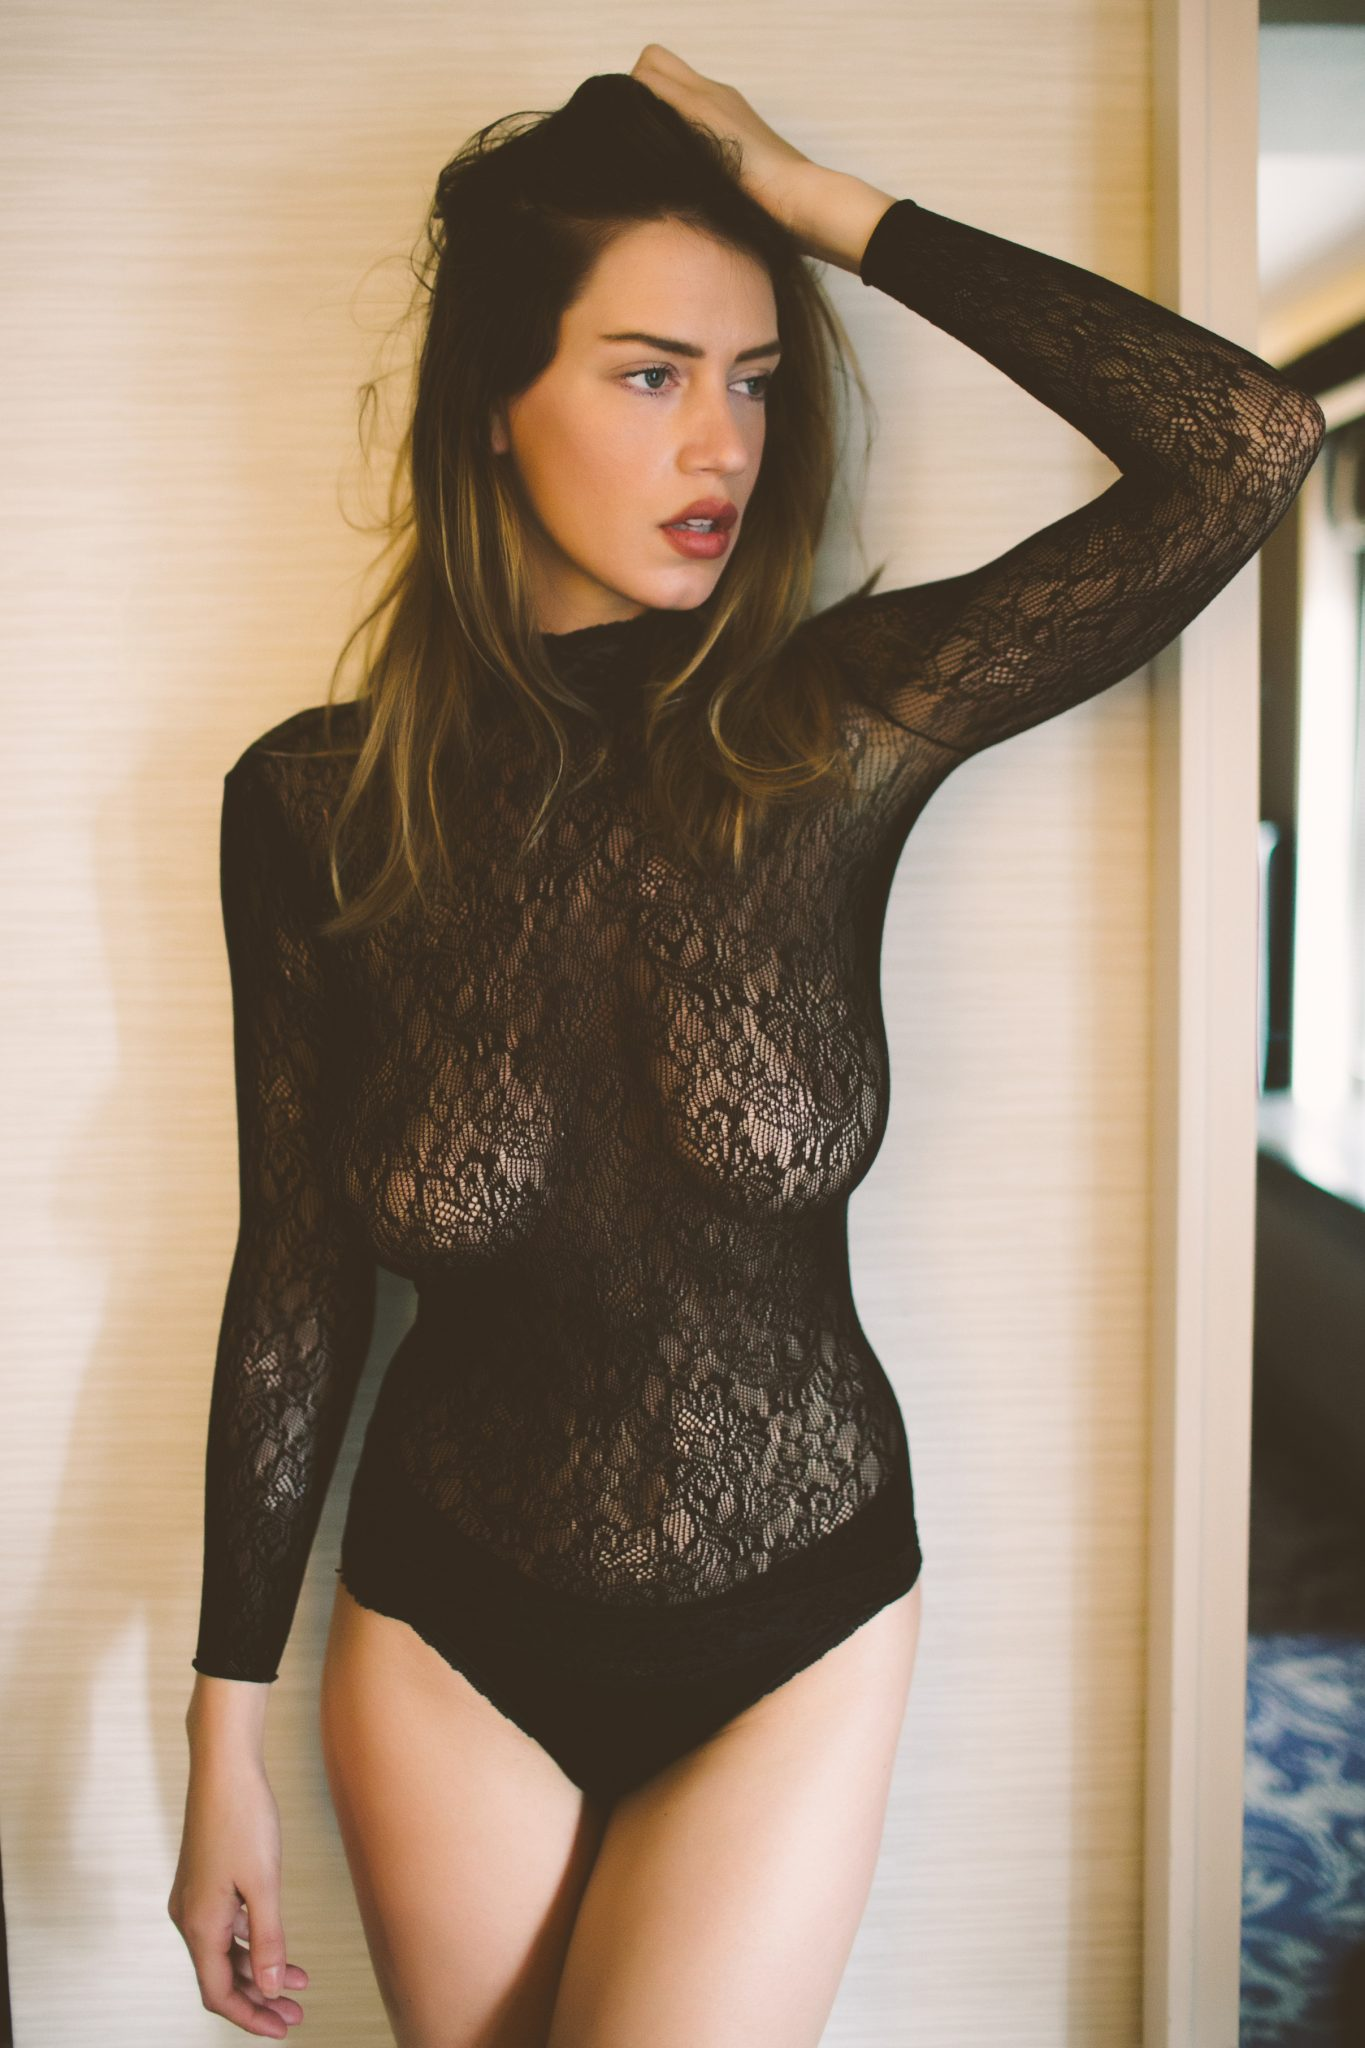 Model wearing see through lingerie